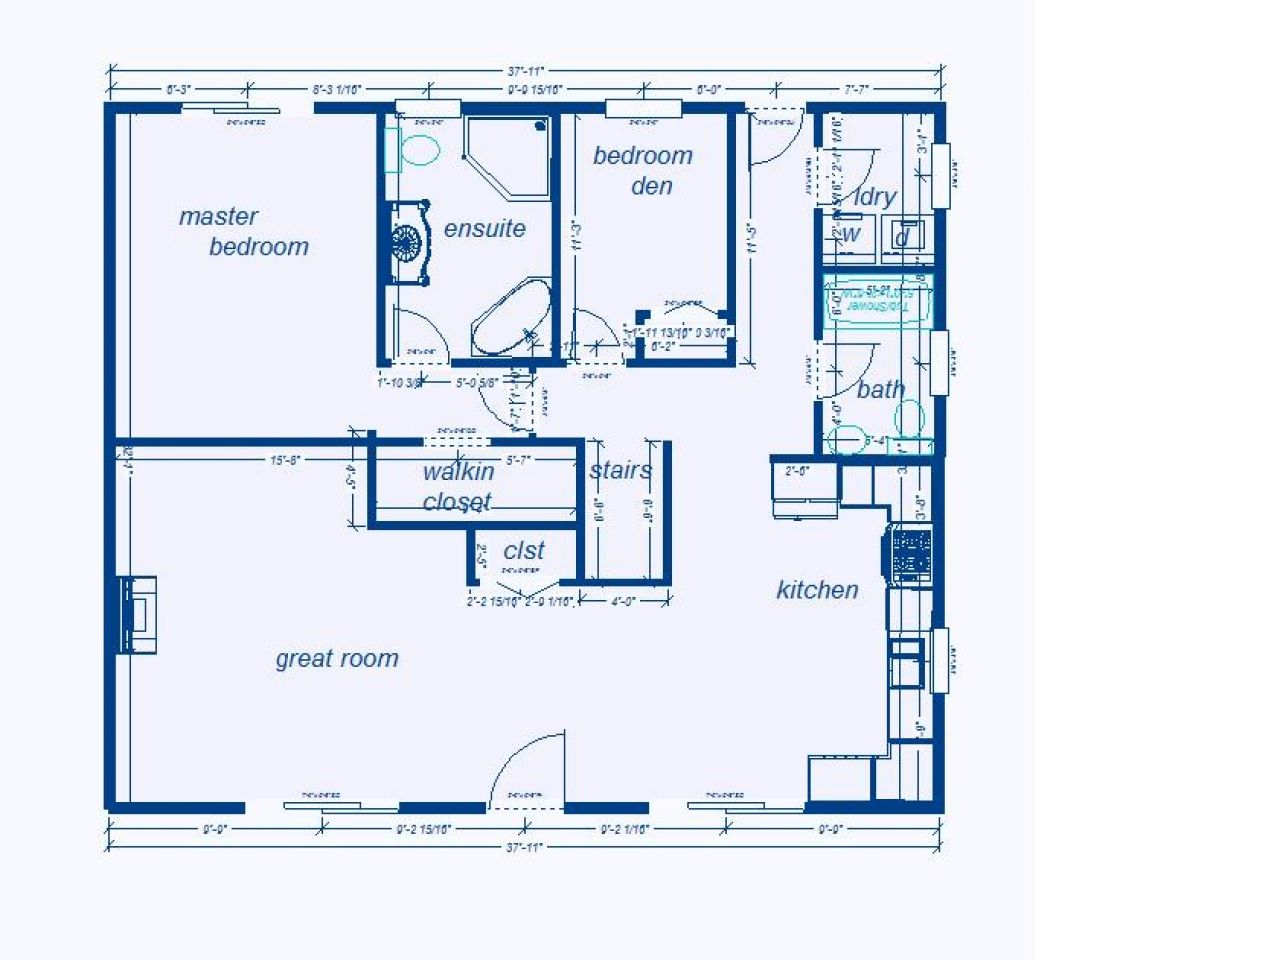 Foundation plans for houses blueprint house free in 12 top for House plans and blueprints